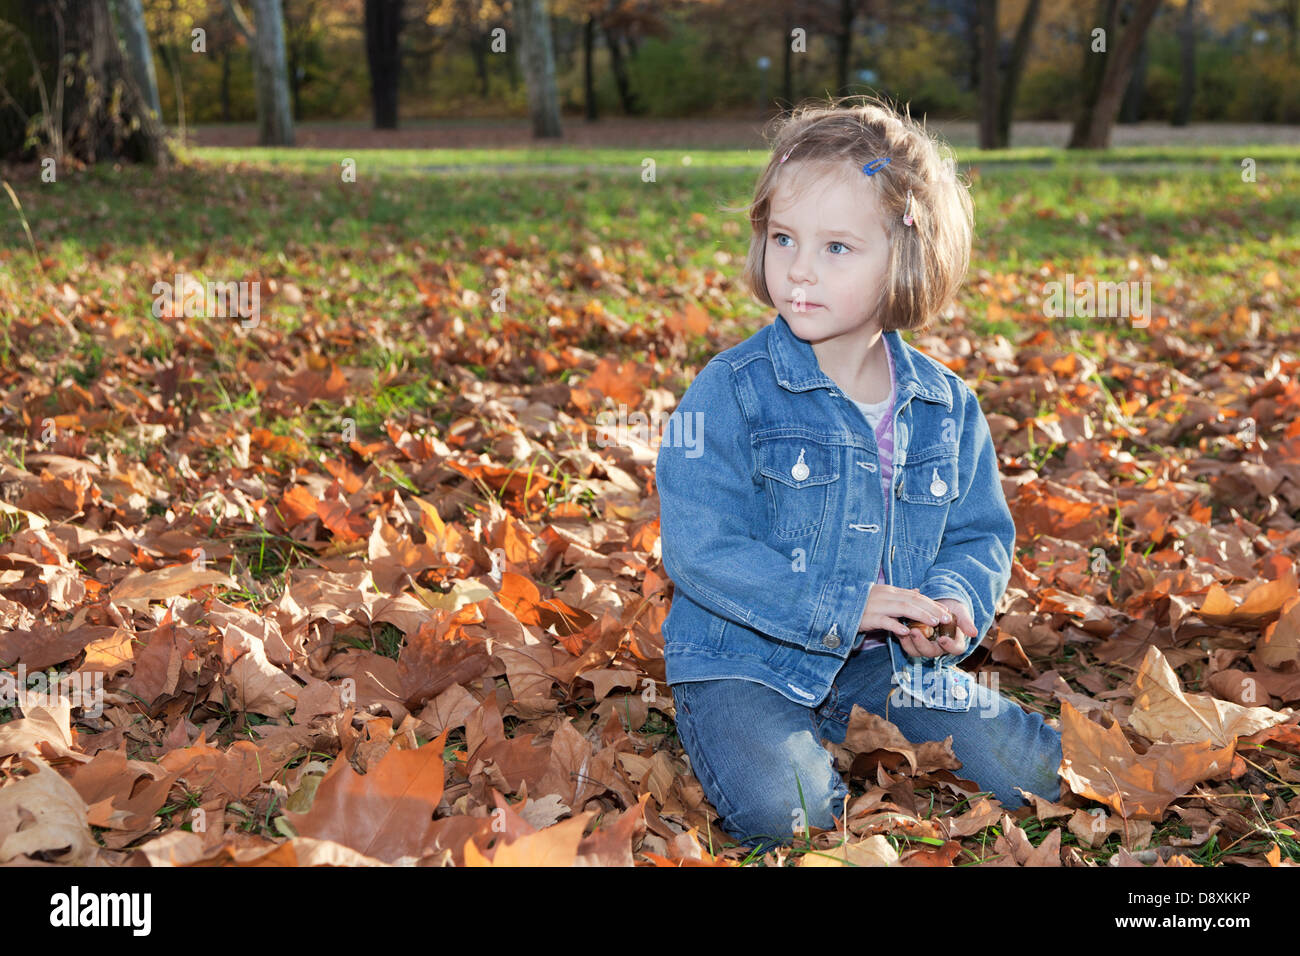 Four year-old girl collecting acorns - Stock Image